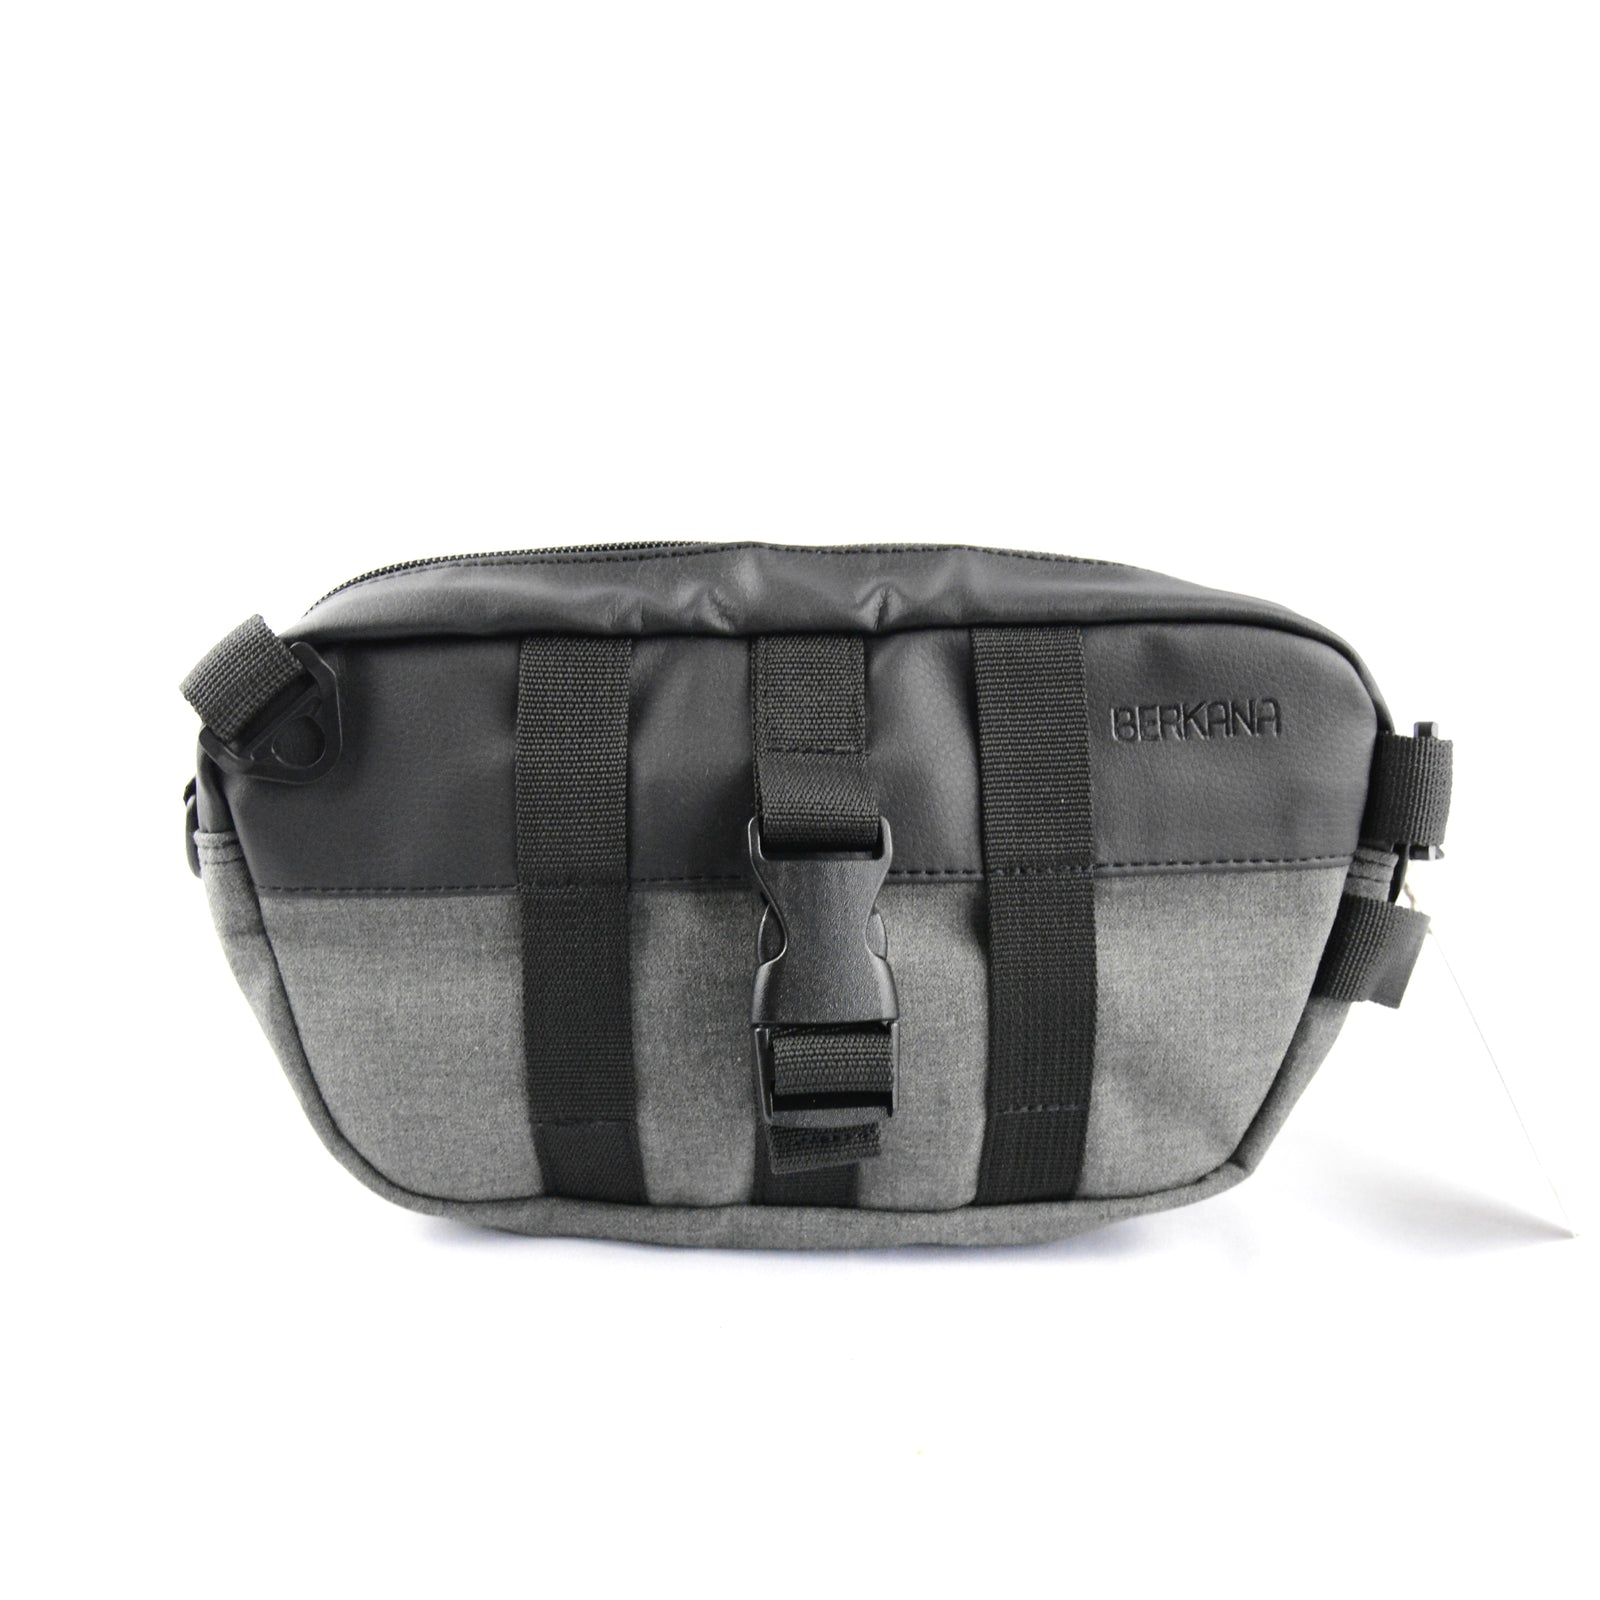 HIP BAG BERKANA - Hipnosis